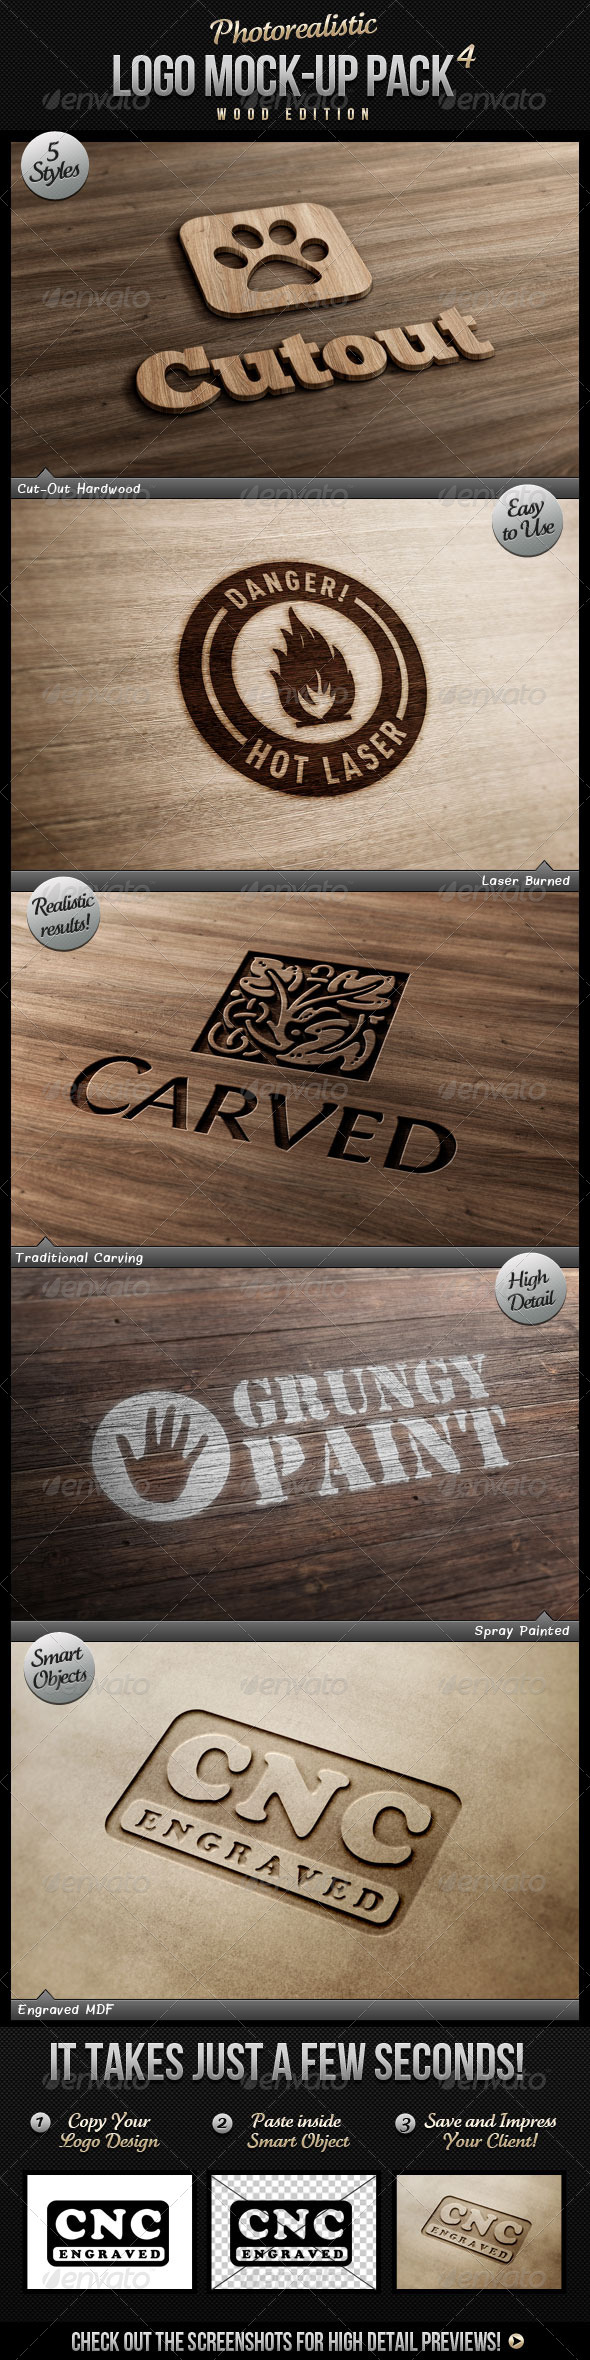 Photorealistic Logo Mock-Up Pack 4 - Wood Edition - Logo Product Mock-Ups